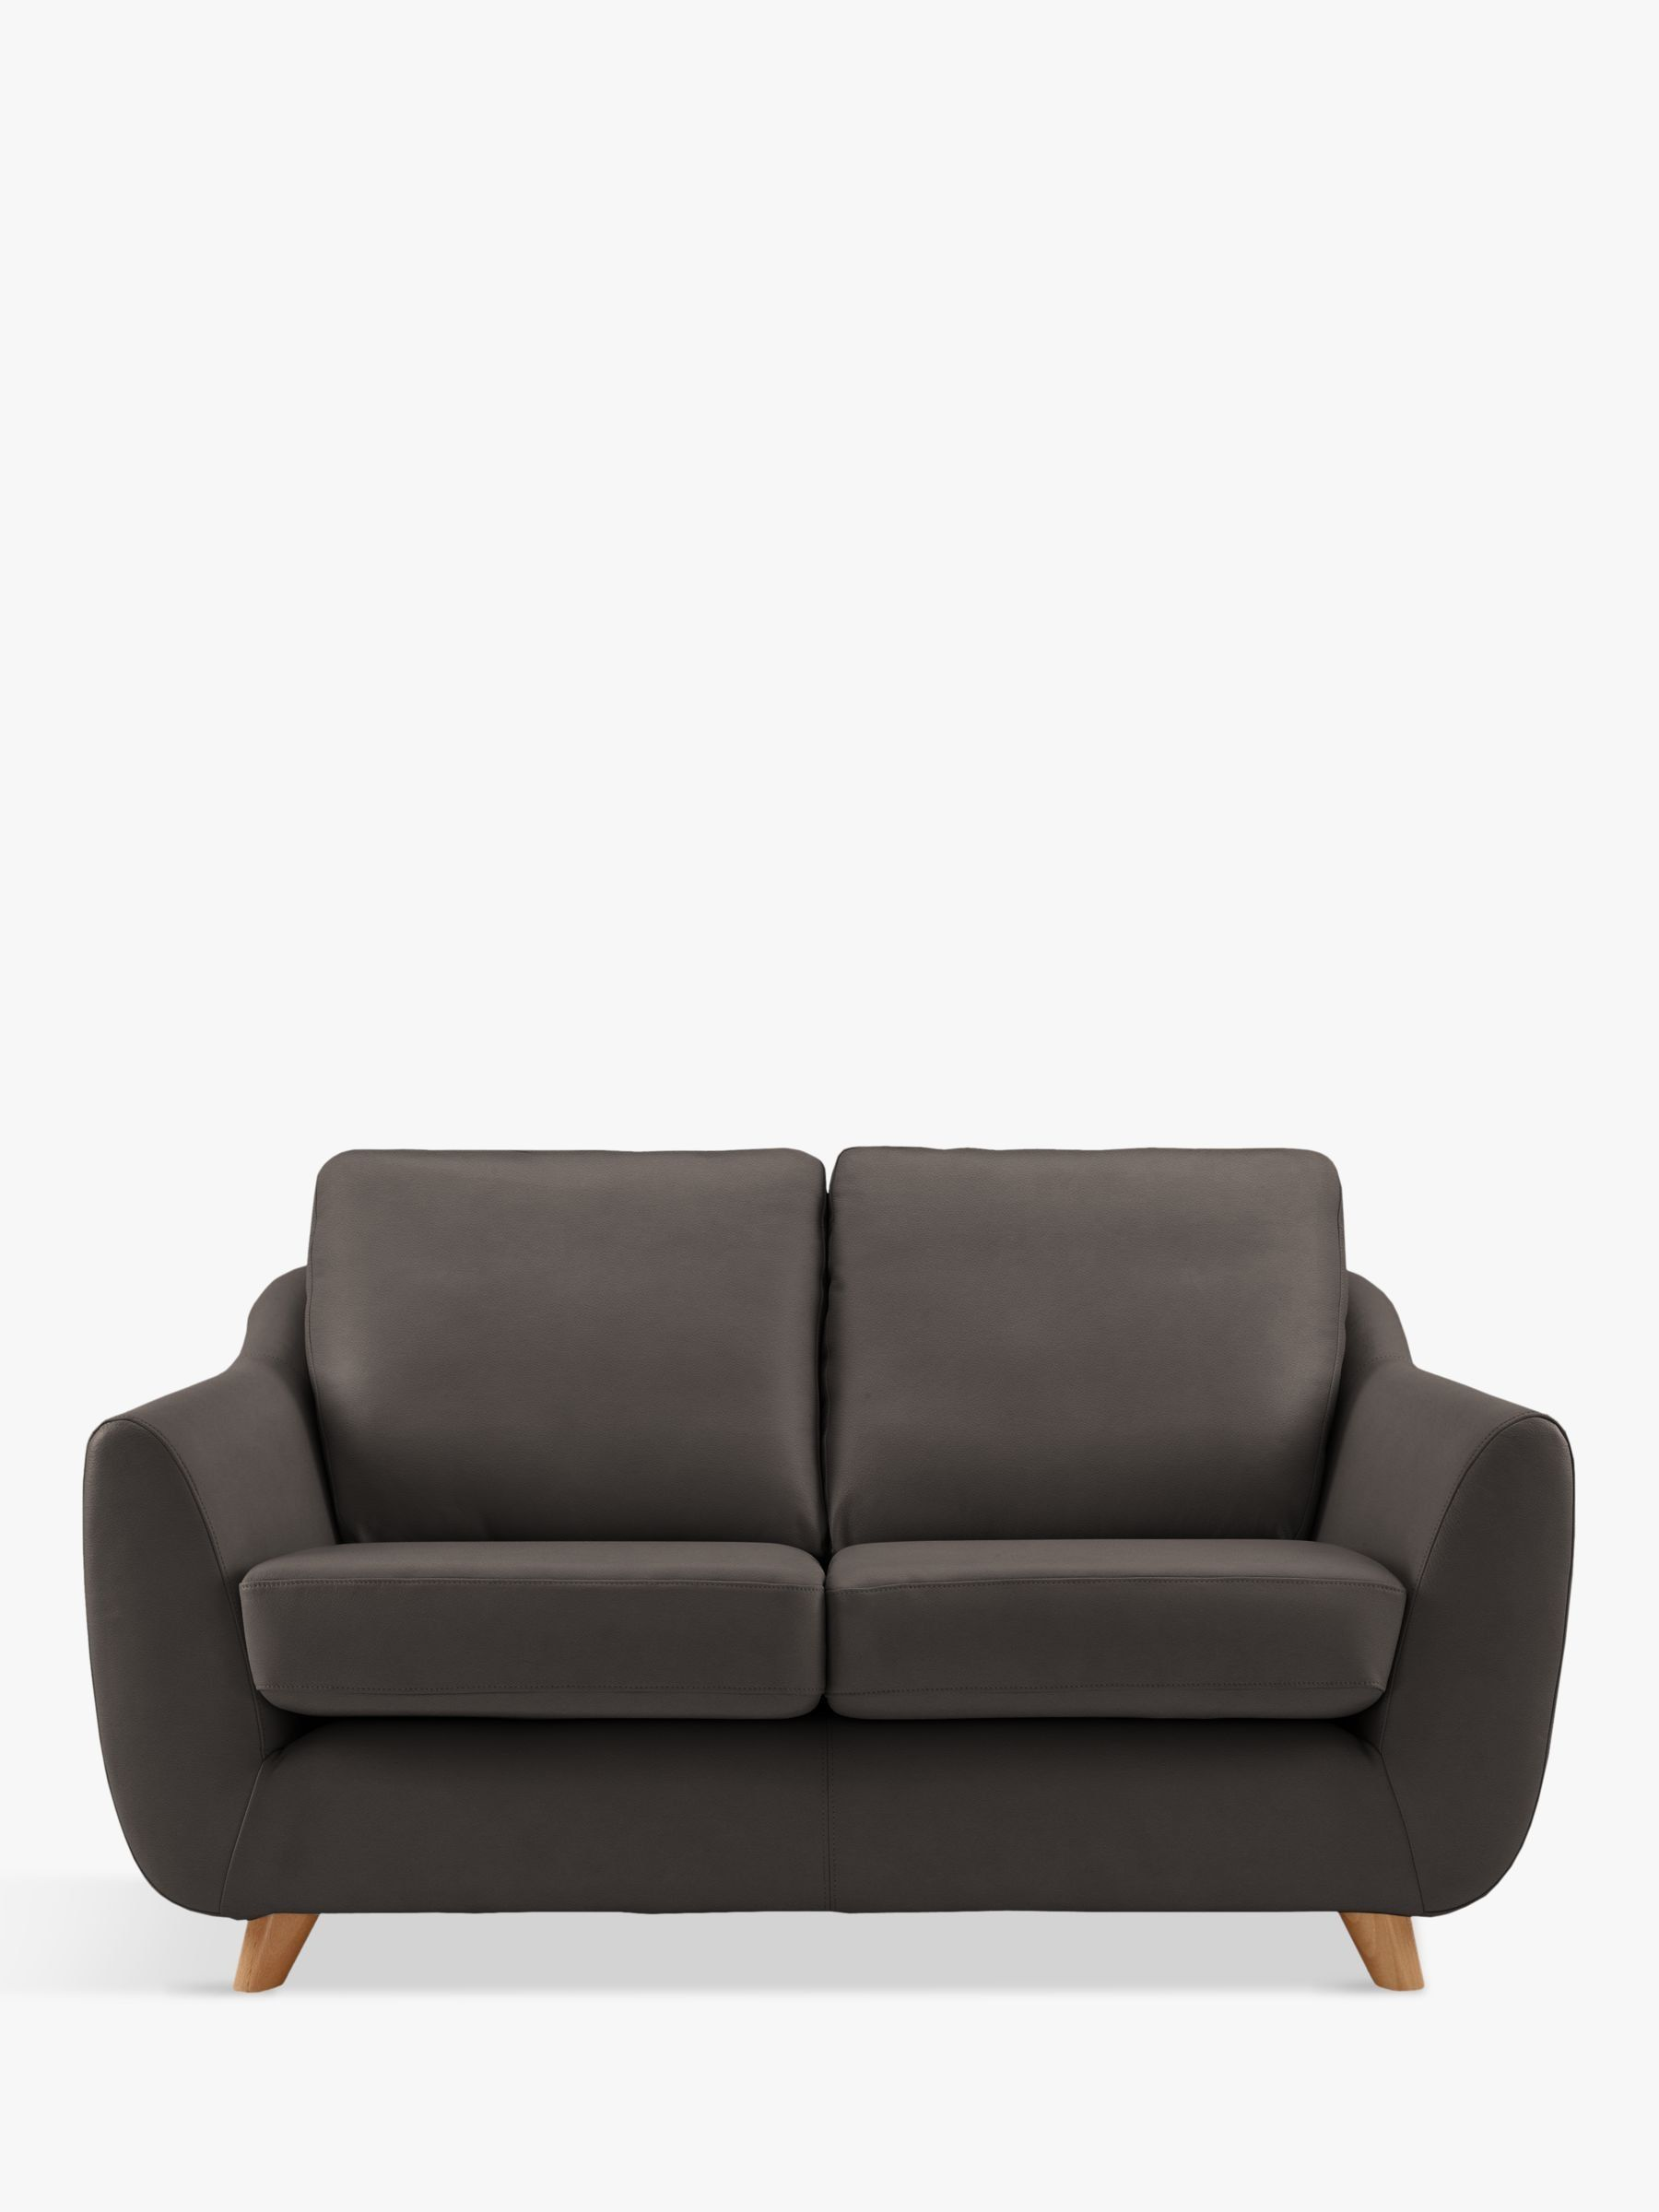 G Plan Vintage The Sixty Seven Small 2 Seater Leather Sofa Leather Sofa Sofas For Small Spaces Sofa